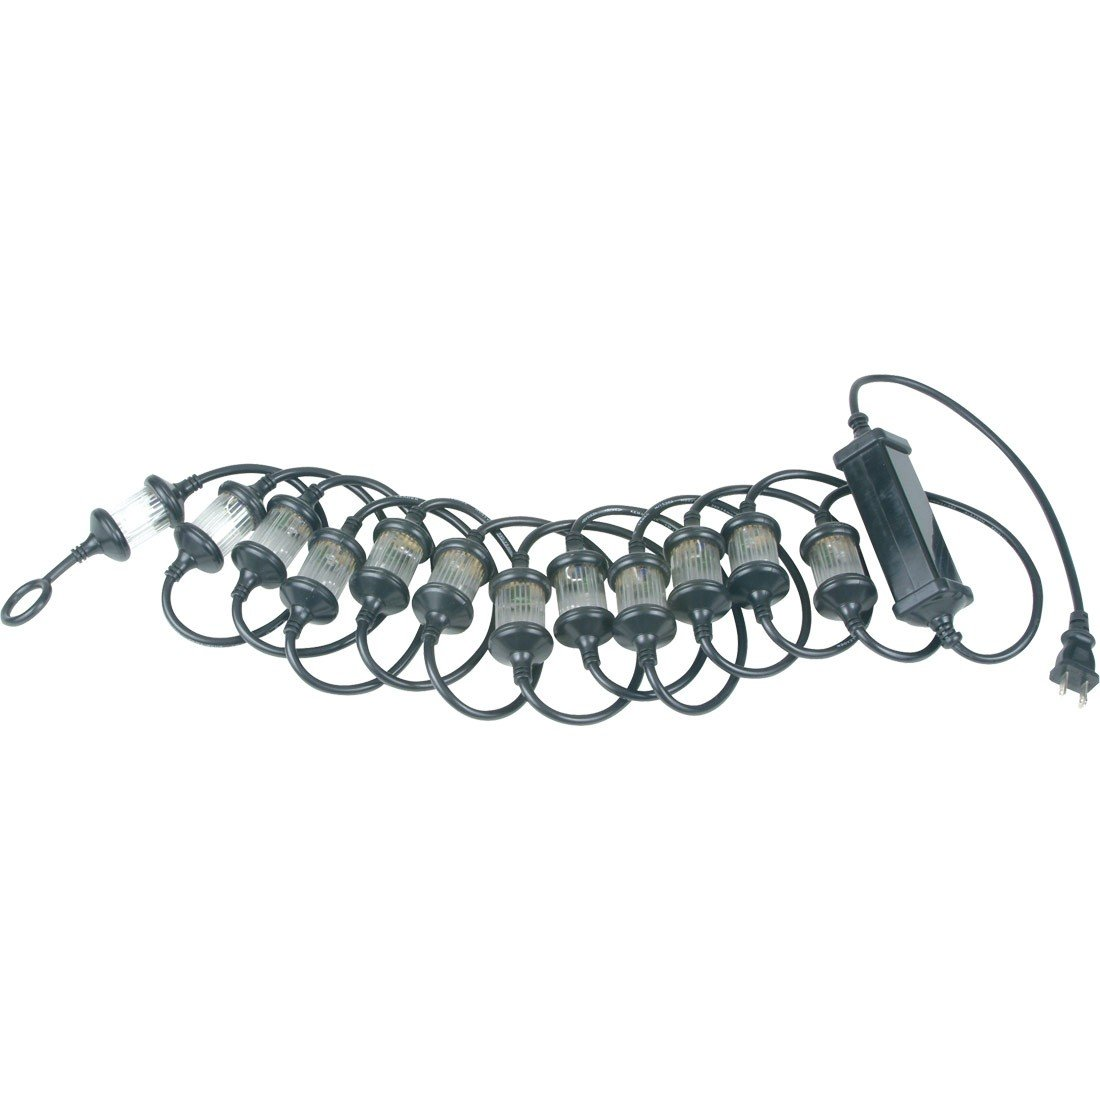 ADJ Products FLASH-ROPE 15' 12 Strobe Light Rope for Indoor/Outdoor Use SF Marketing Inc. (CA) Flash Rope 15145